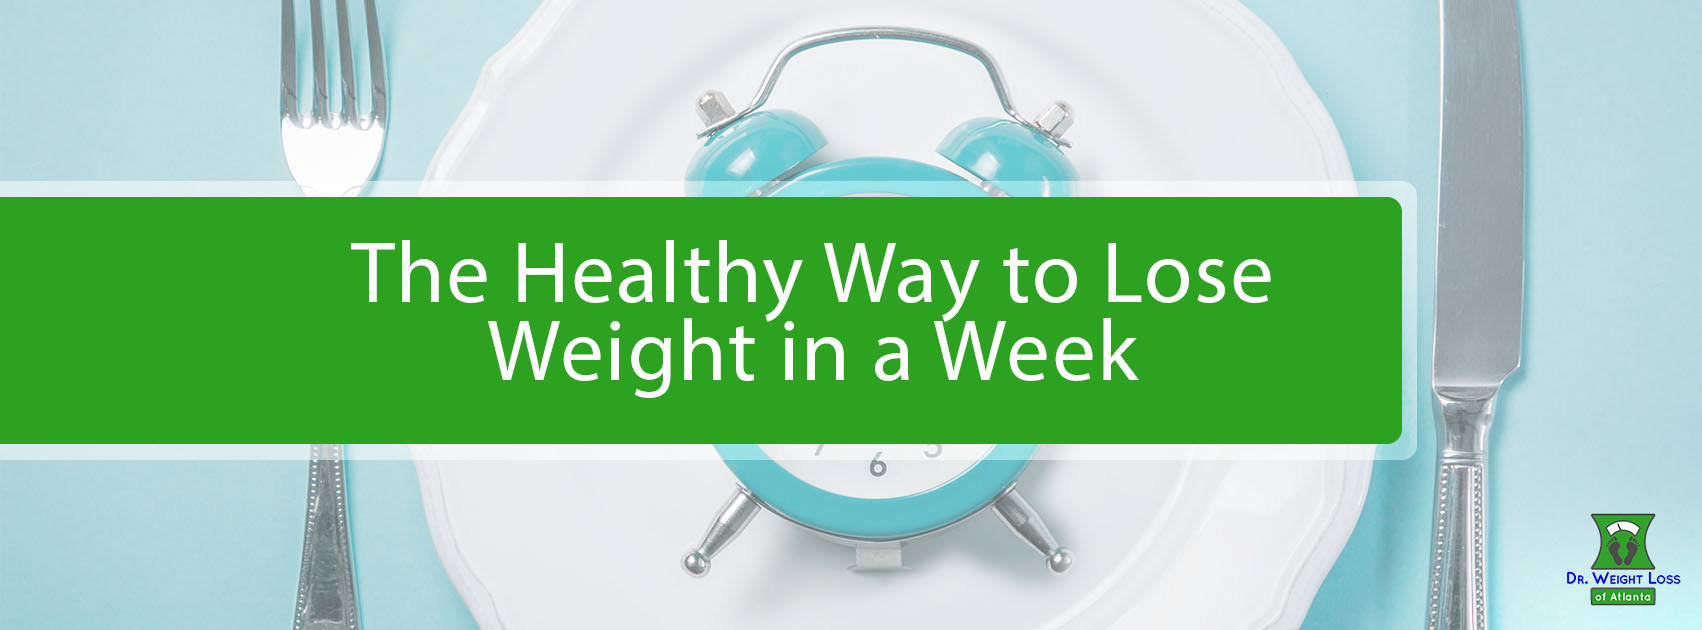 A plate setup with an alarm clock on it symbolizing quick weight loss.